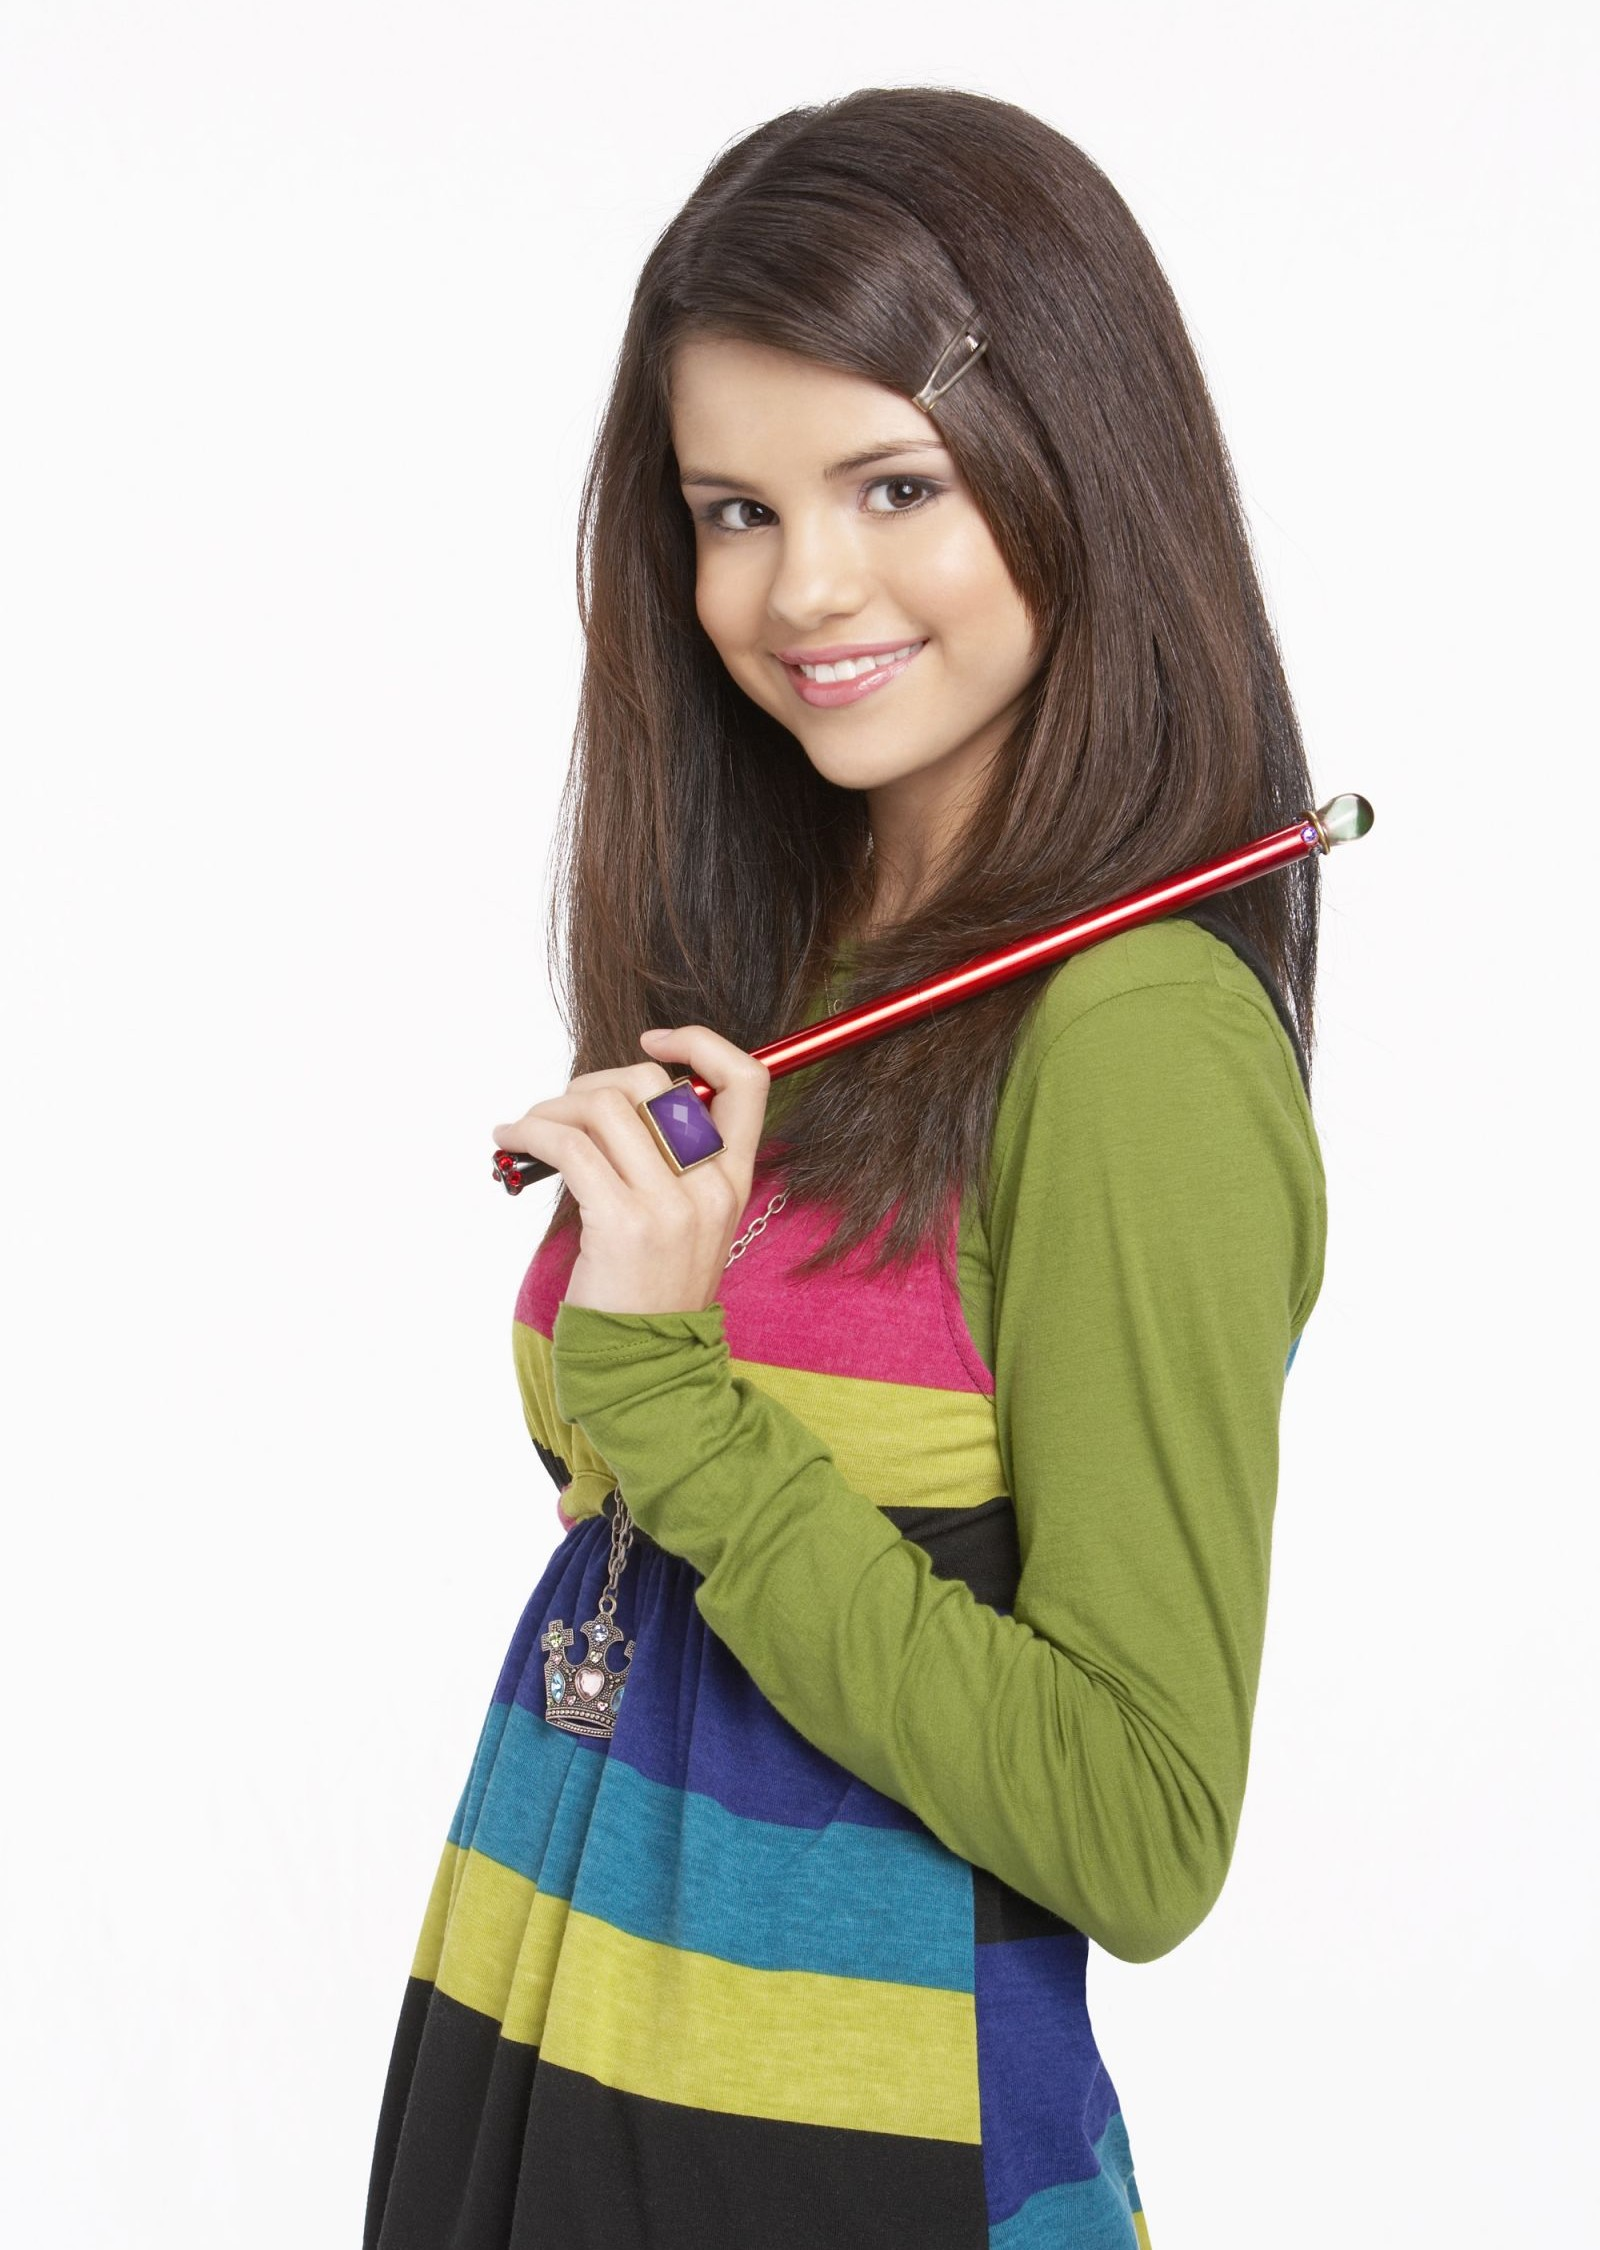 Selena gomez wizards of waverly place photo shoot www for The waverly